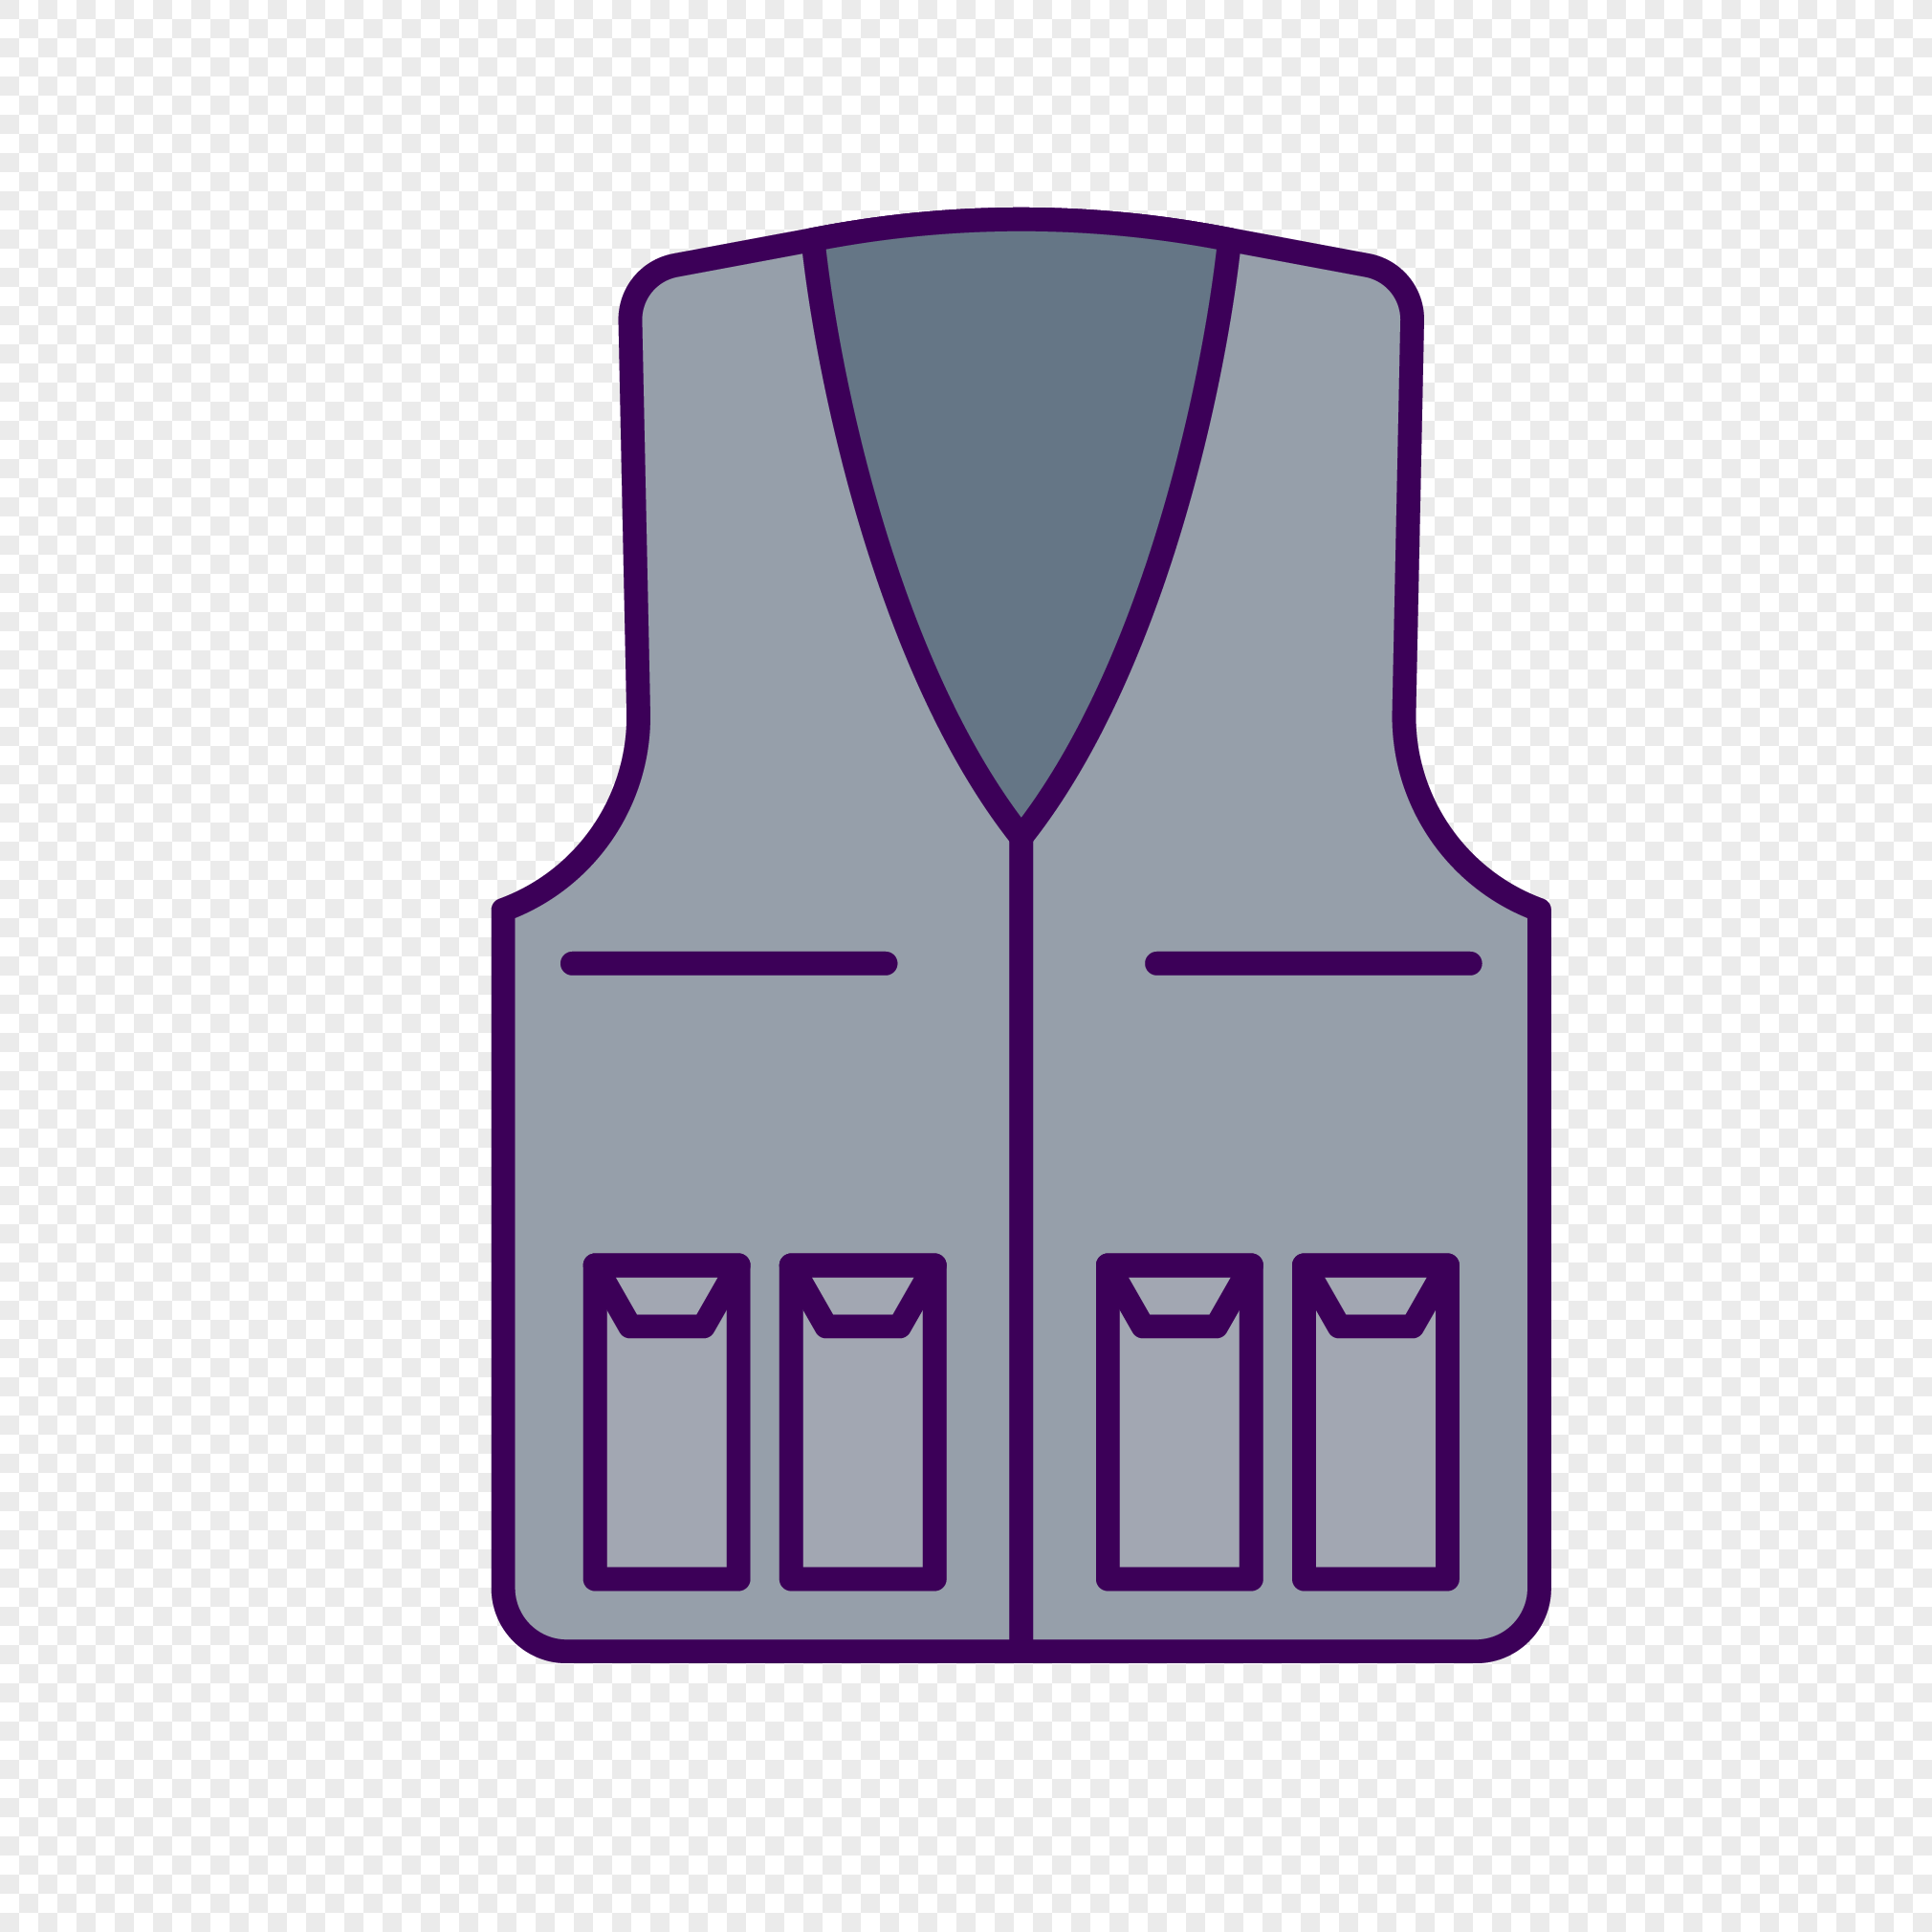 2020x2020 Bulletproof Vest Vector Png Image Picture Free Download